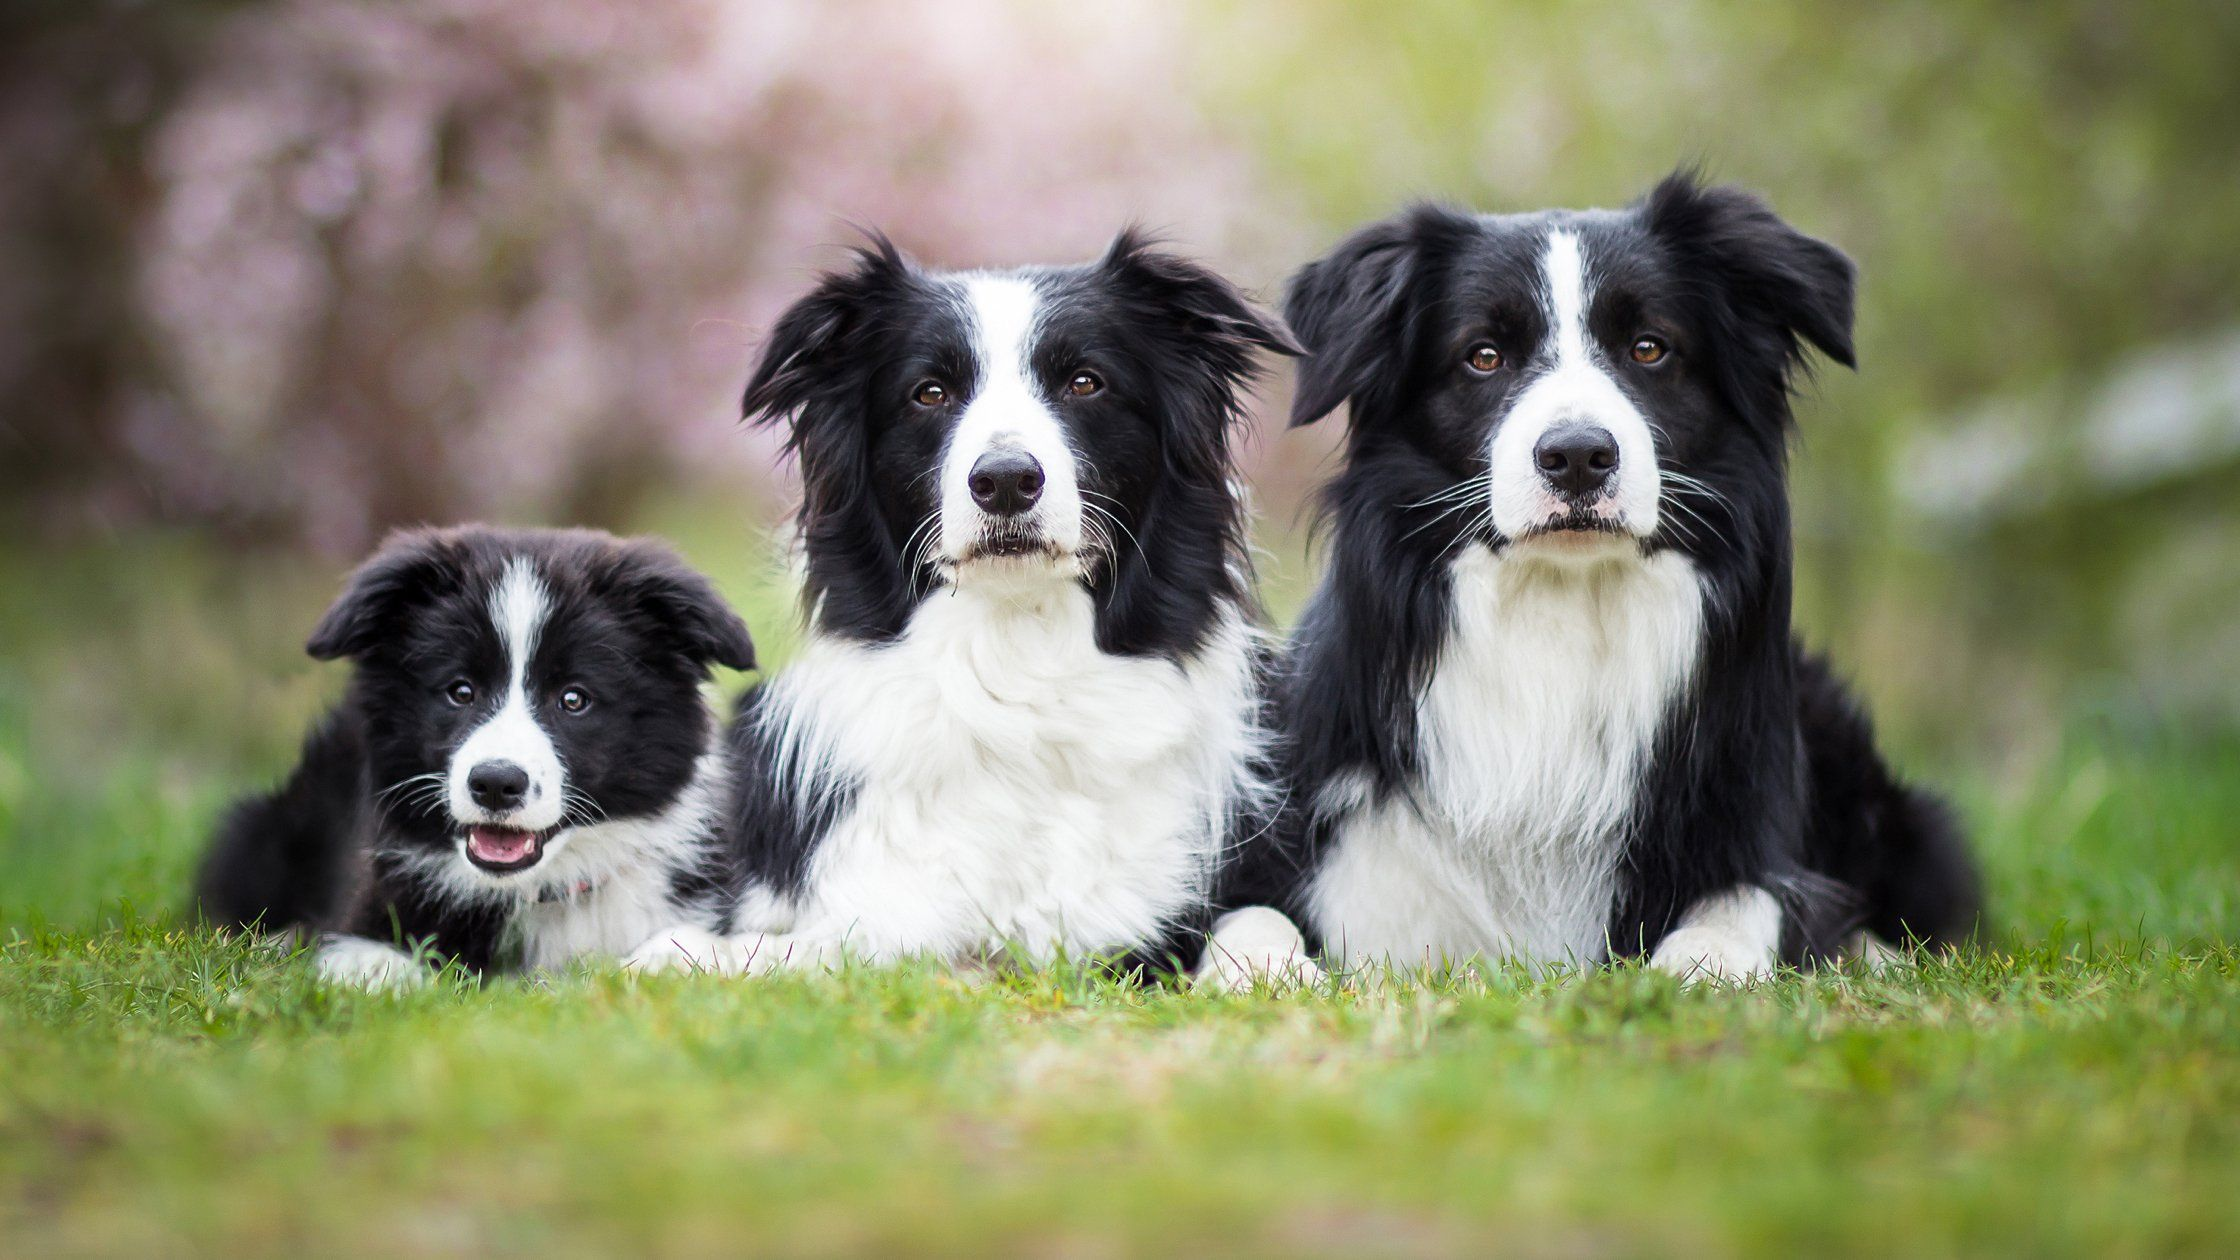 Border Collie Puppies For Sale Near Maine From Certified Border Collie Puppy For Sale Nea In 2020 Border Collie Puppies Border Collie Breeders Collie Puppies For Sale